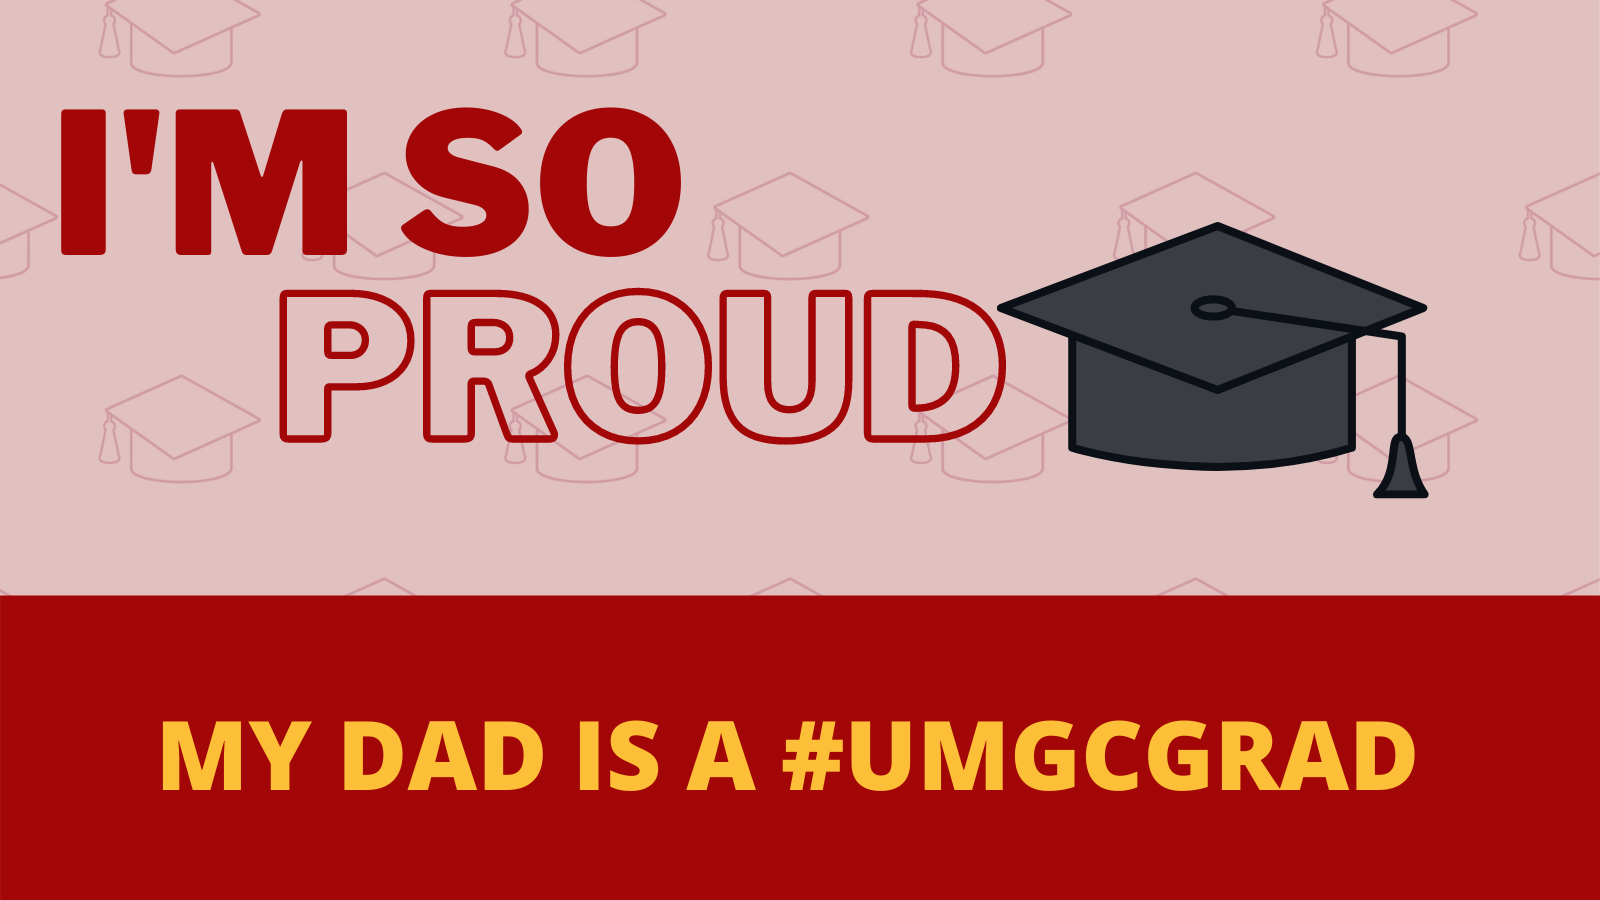 I'm so proud; My dad is a #UMGCGRAD: Social media toolkit image 3 for Twitter feed posts